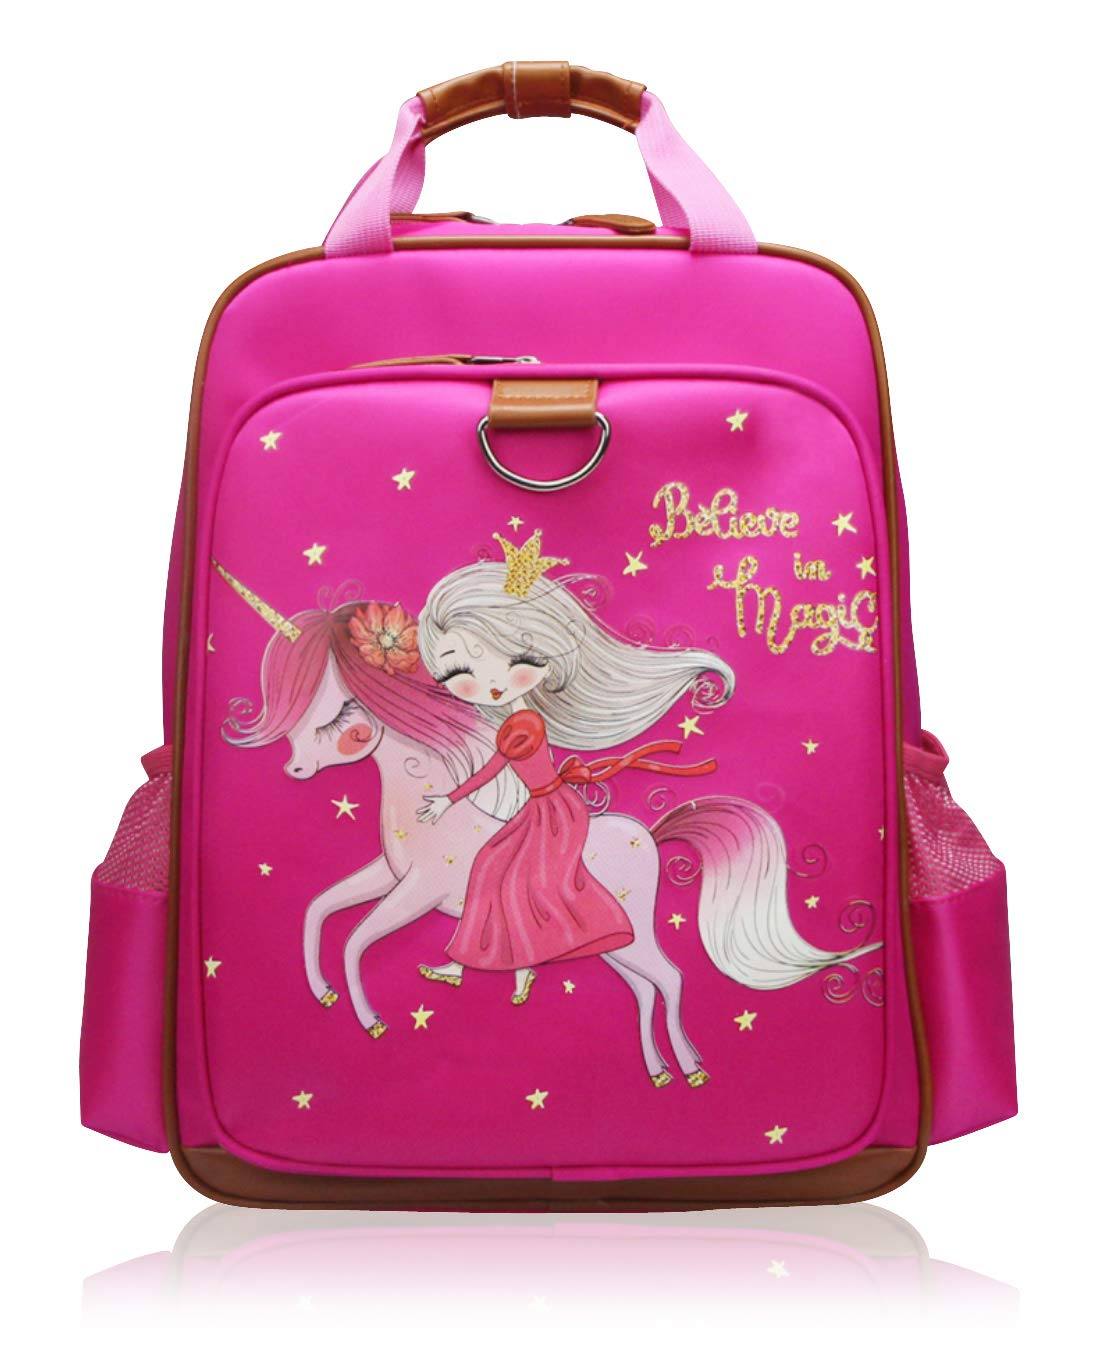 Girls Backpack Unicorn 15''| Pink Kids School Bag for Kindergarten or Elementary (Pink Princess) by JOJOOKIDS